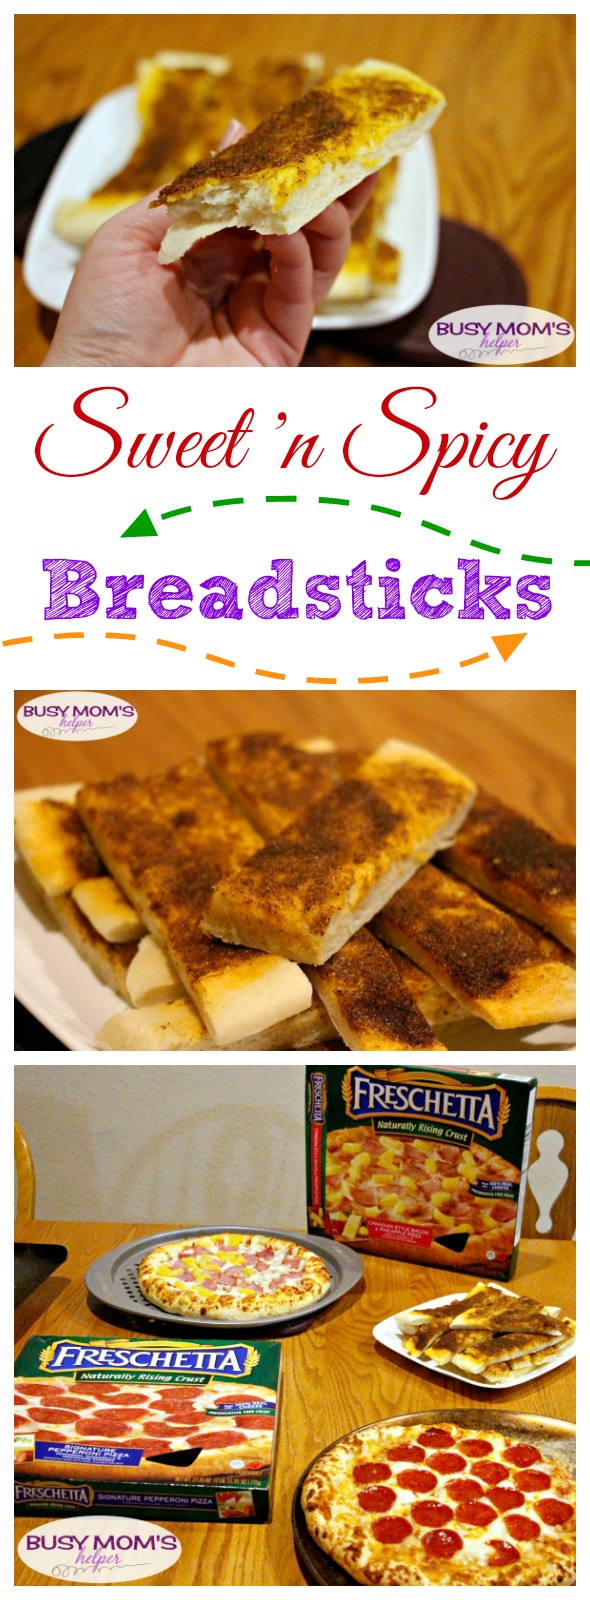 Sweet 'N Spicy Breadsticks #ad #FreschettaFresh @Walmart @Freschetta